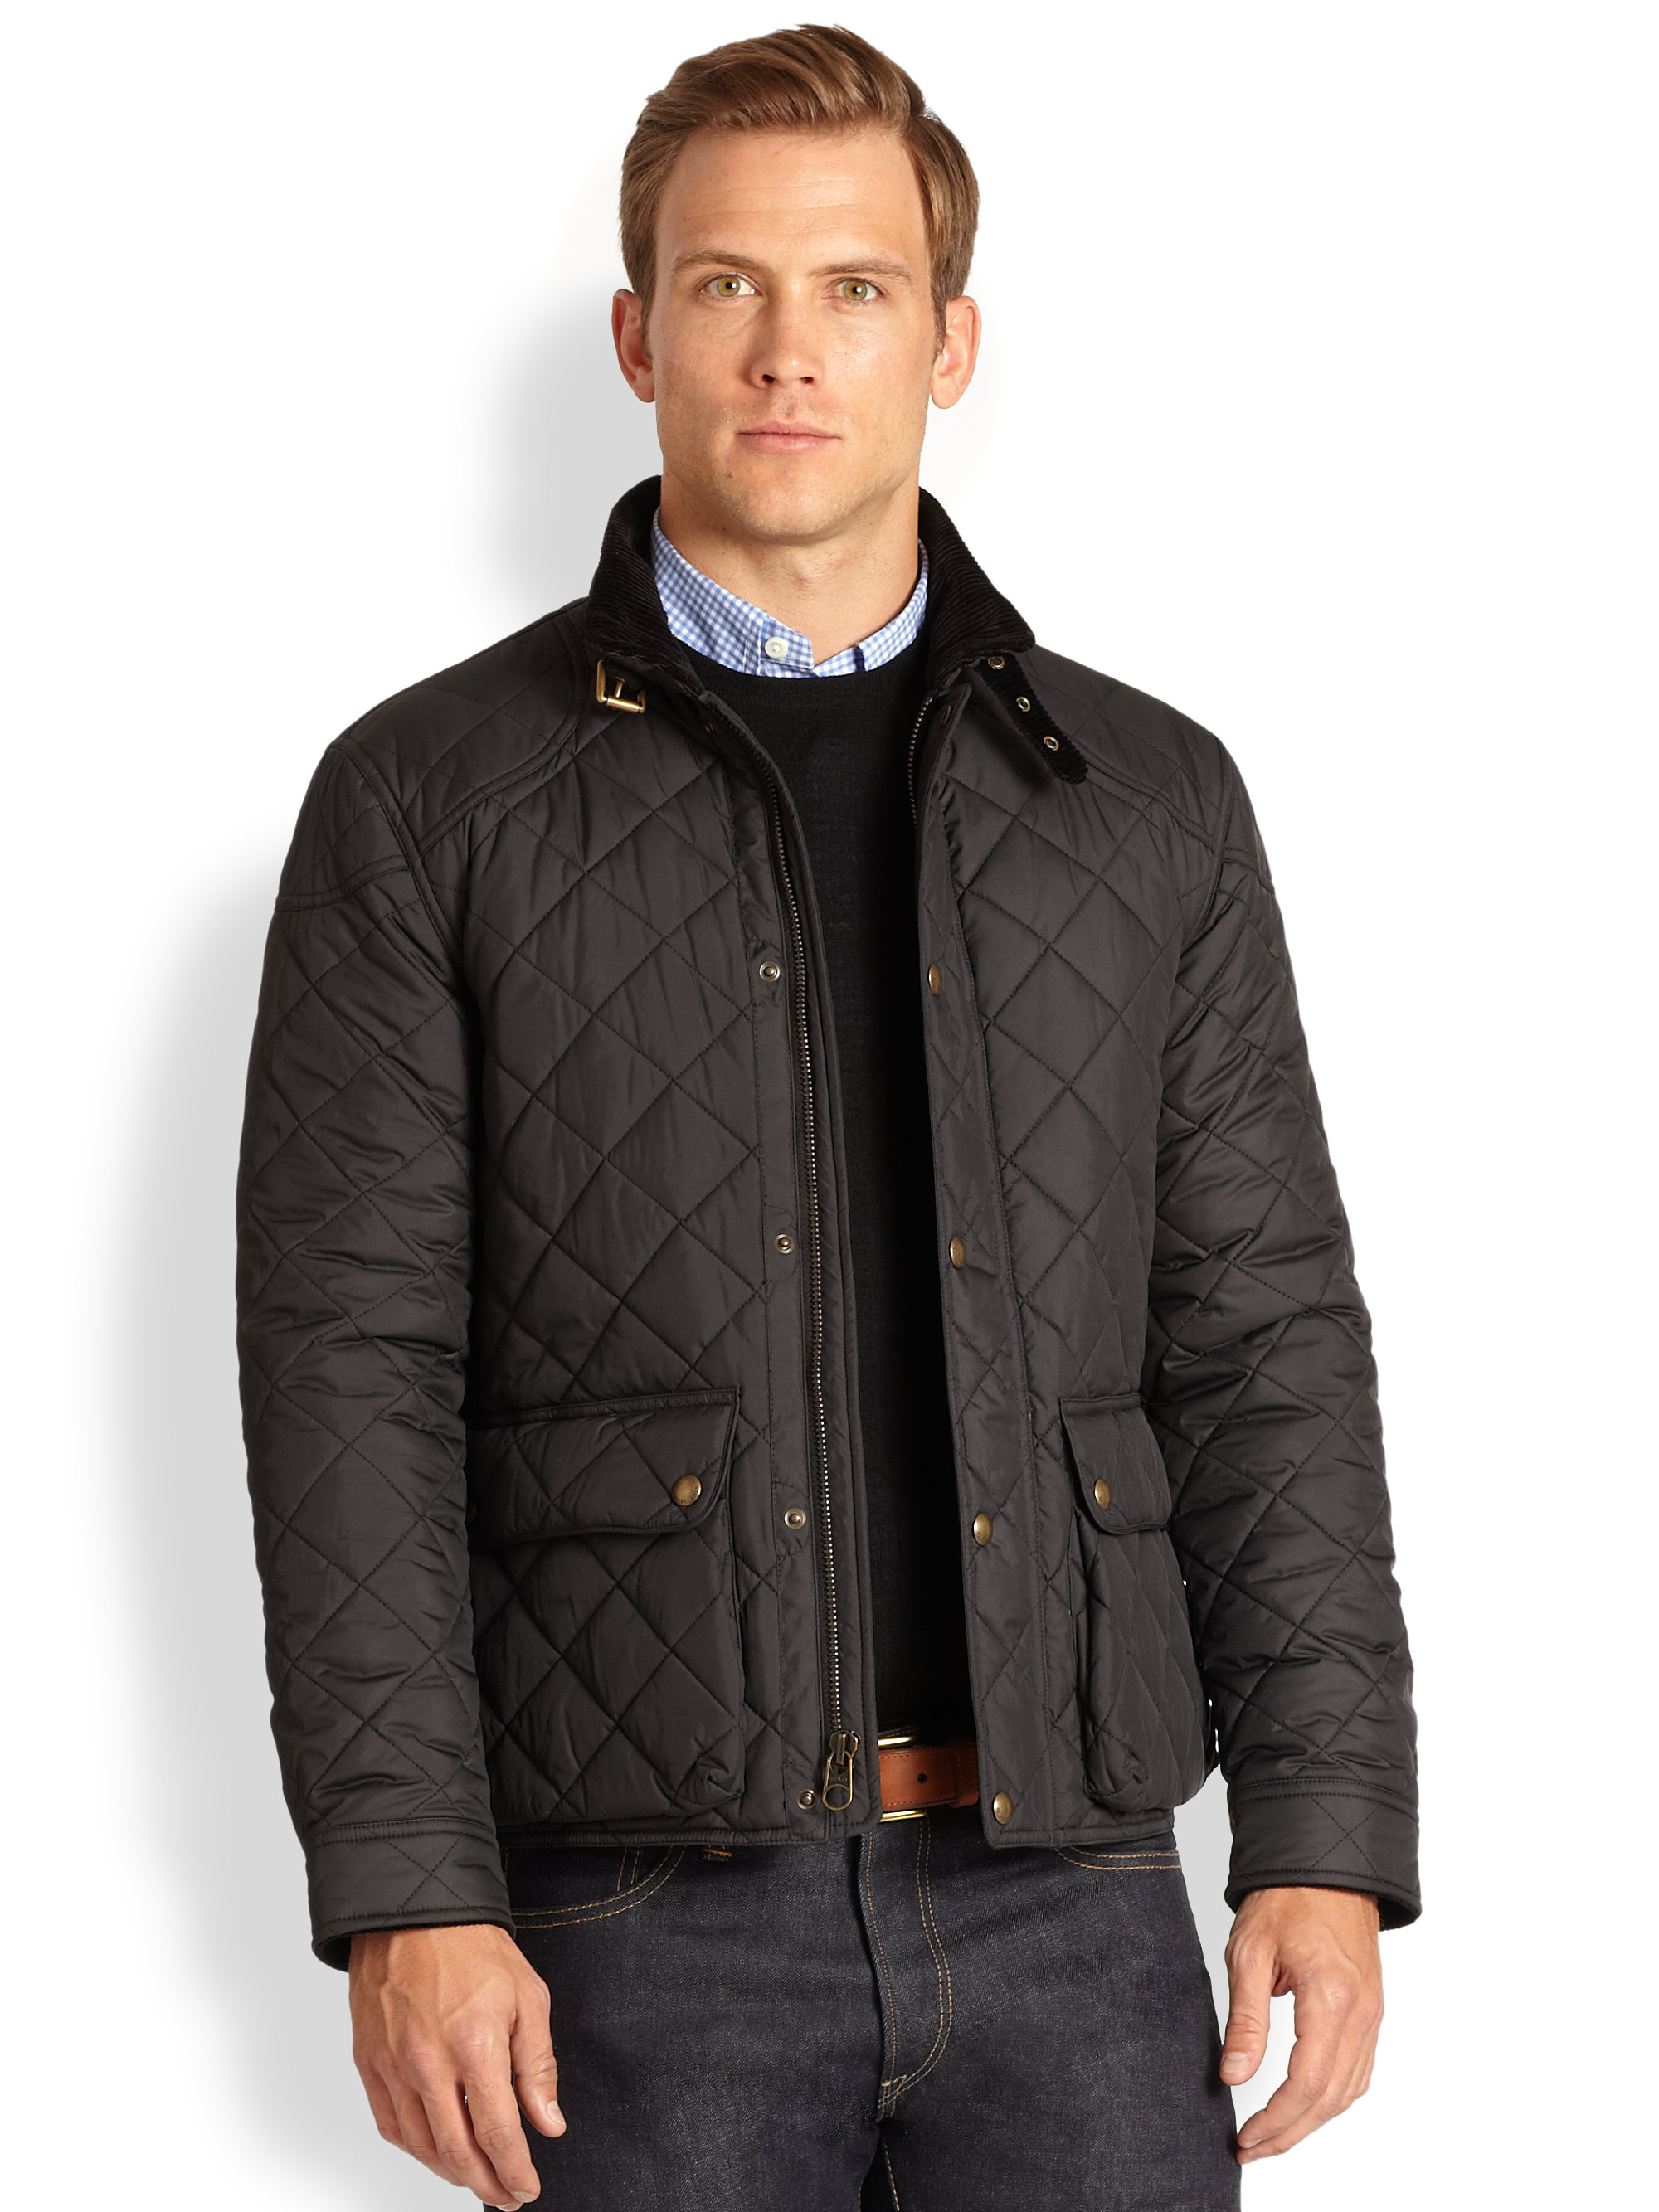 Lyst Polo Ralph Lauren Cadwell Quilted Bomber Jacket In Black For Men